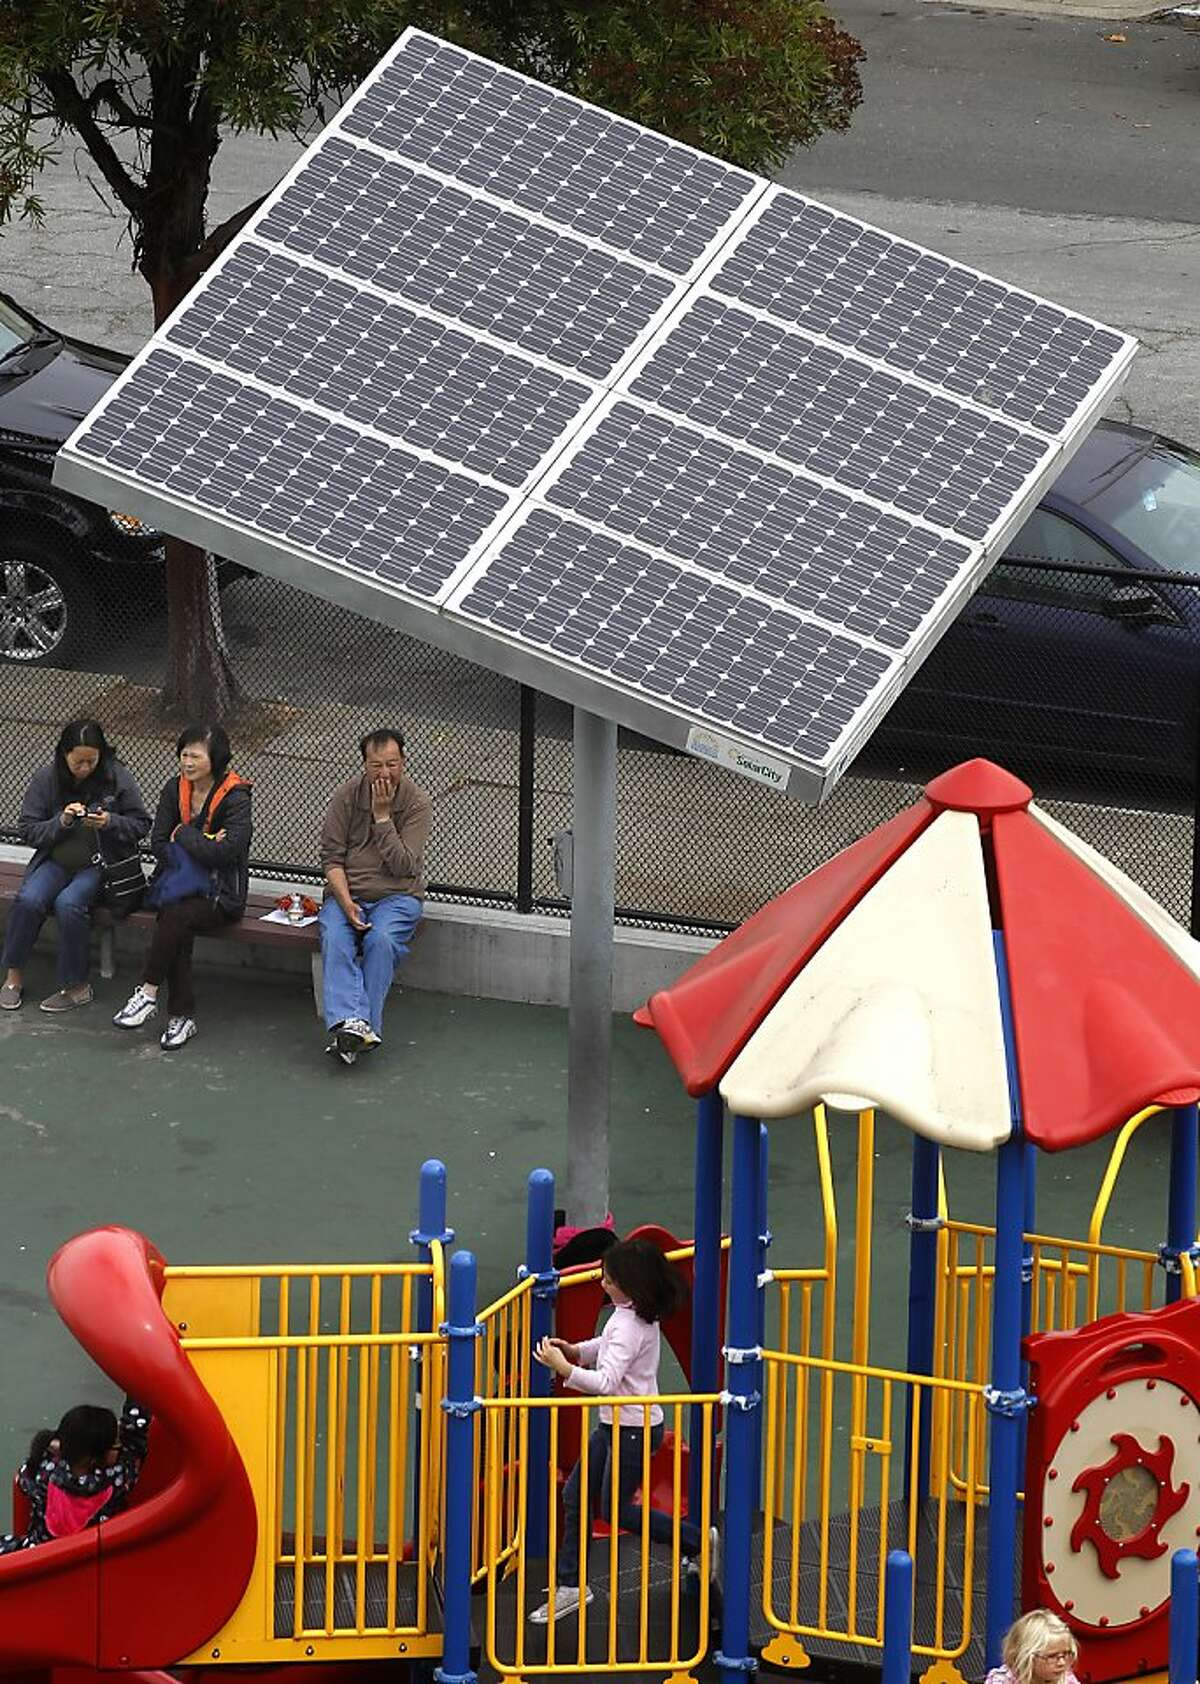 In this file photo, a Lawton Alternative a K-8th grade school in San Francisco. CleanPowerSF, is designed to build a customer base and revenue stream to lay the groundwork for city-owned renewable power generation while advancing San Francisco's aggressive greenhouse gas reduction goals.